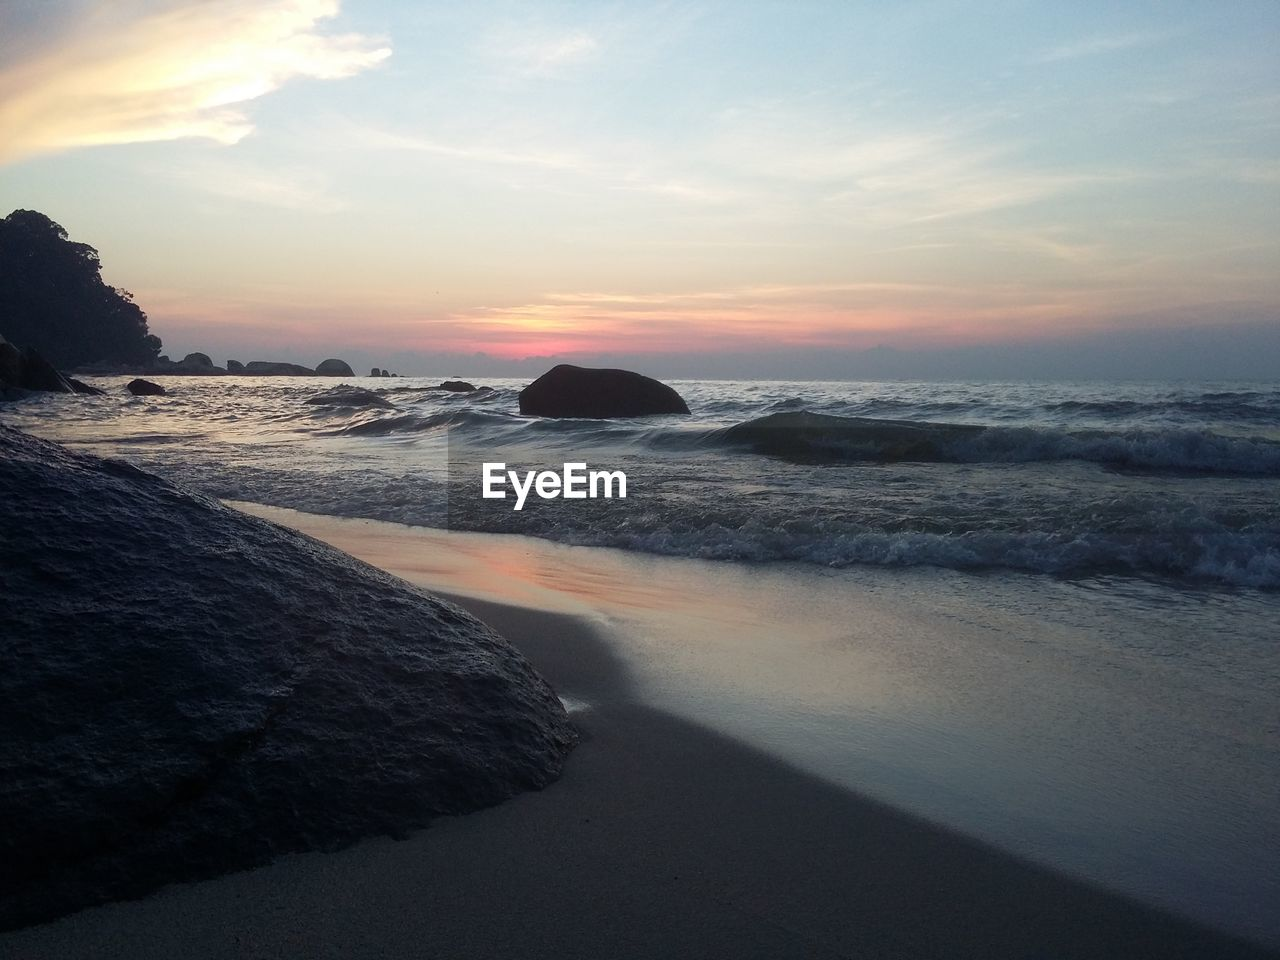 sea, sunset, nature, scenics, beauty in nature, water, tranquil scene, tranquility, beach, sky, rock - object, outdoors, no people, horizon over water, sand, wave, day